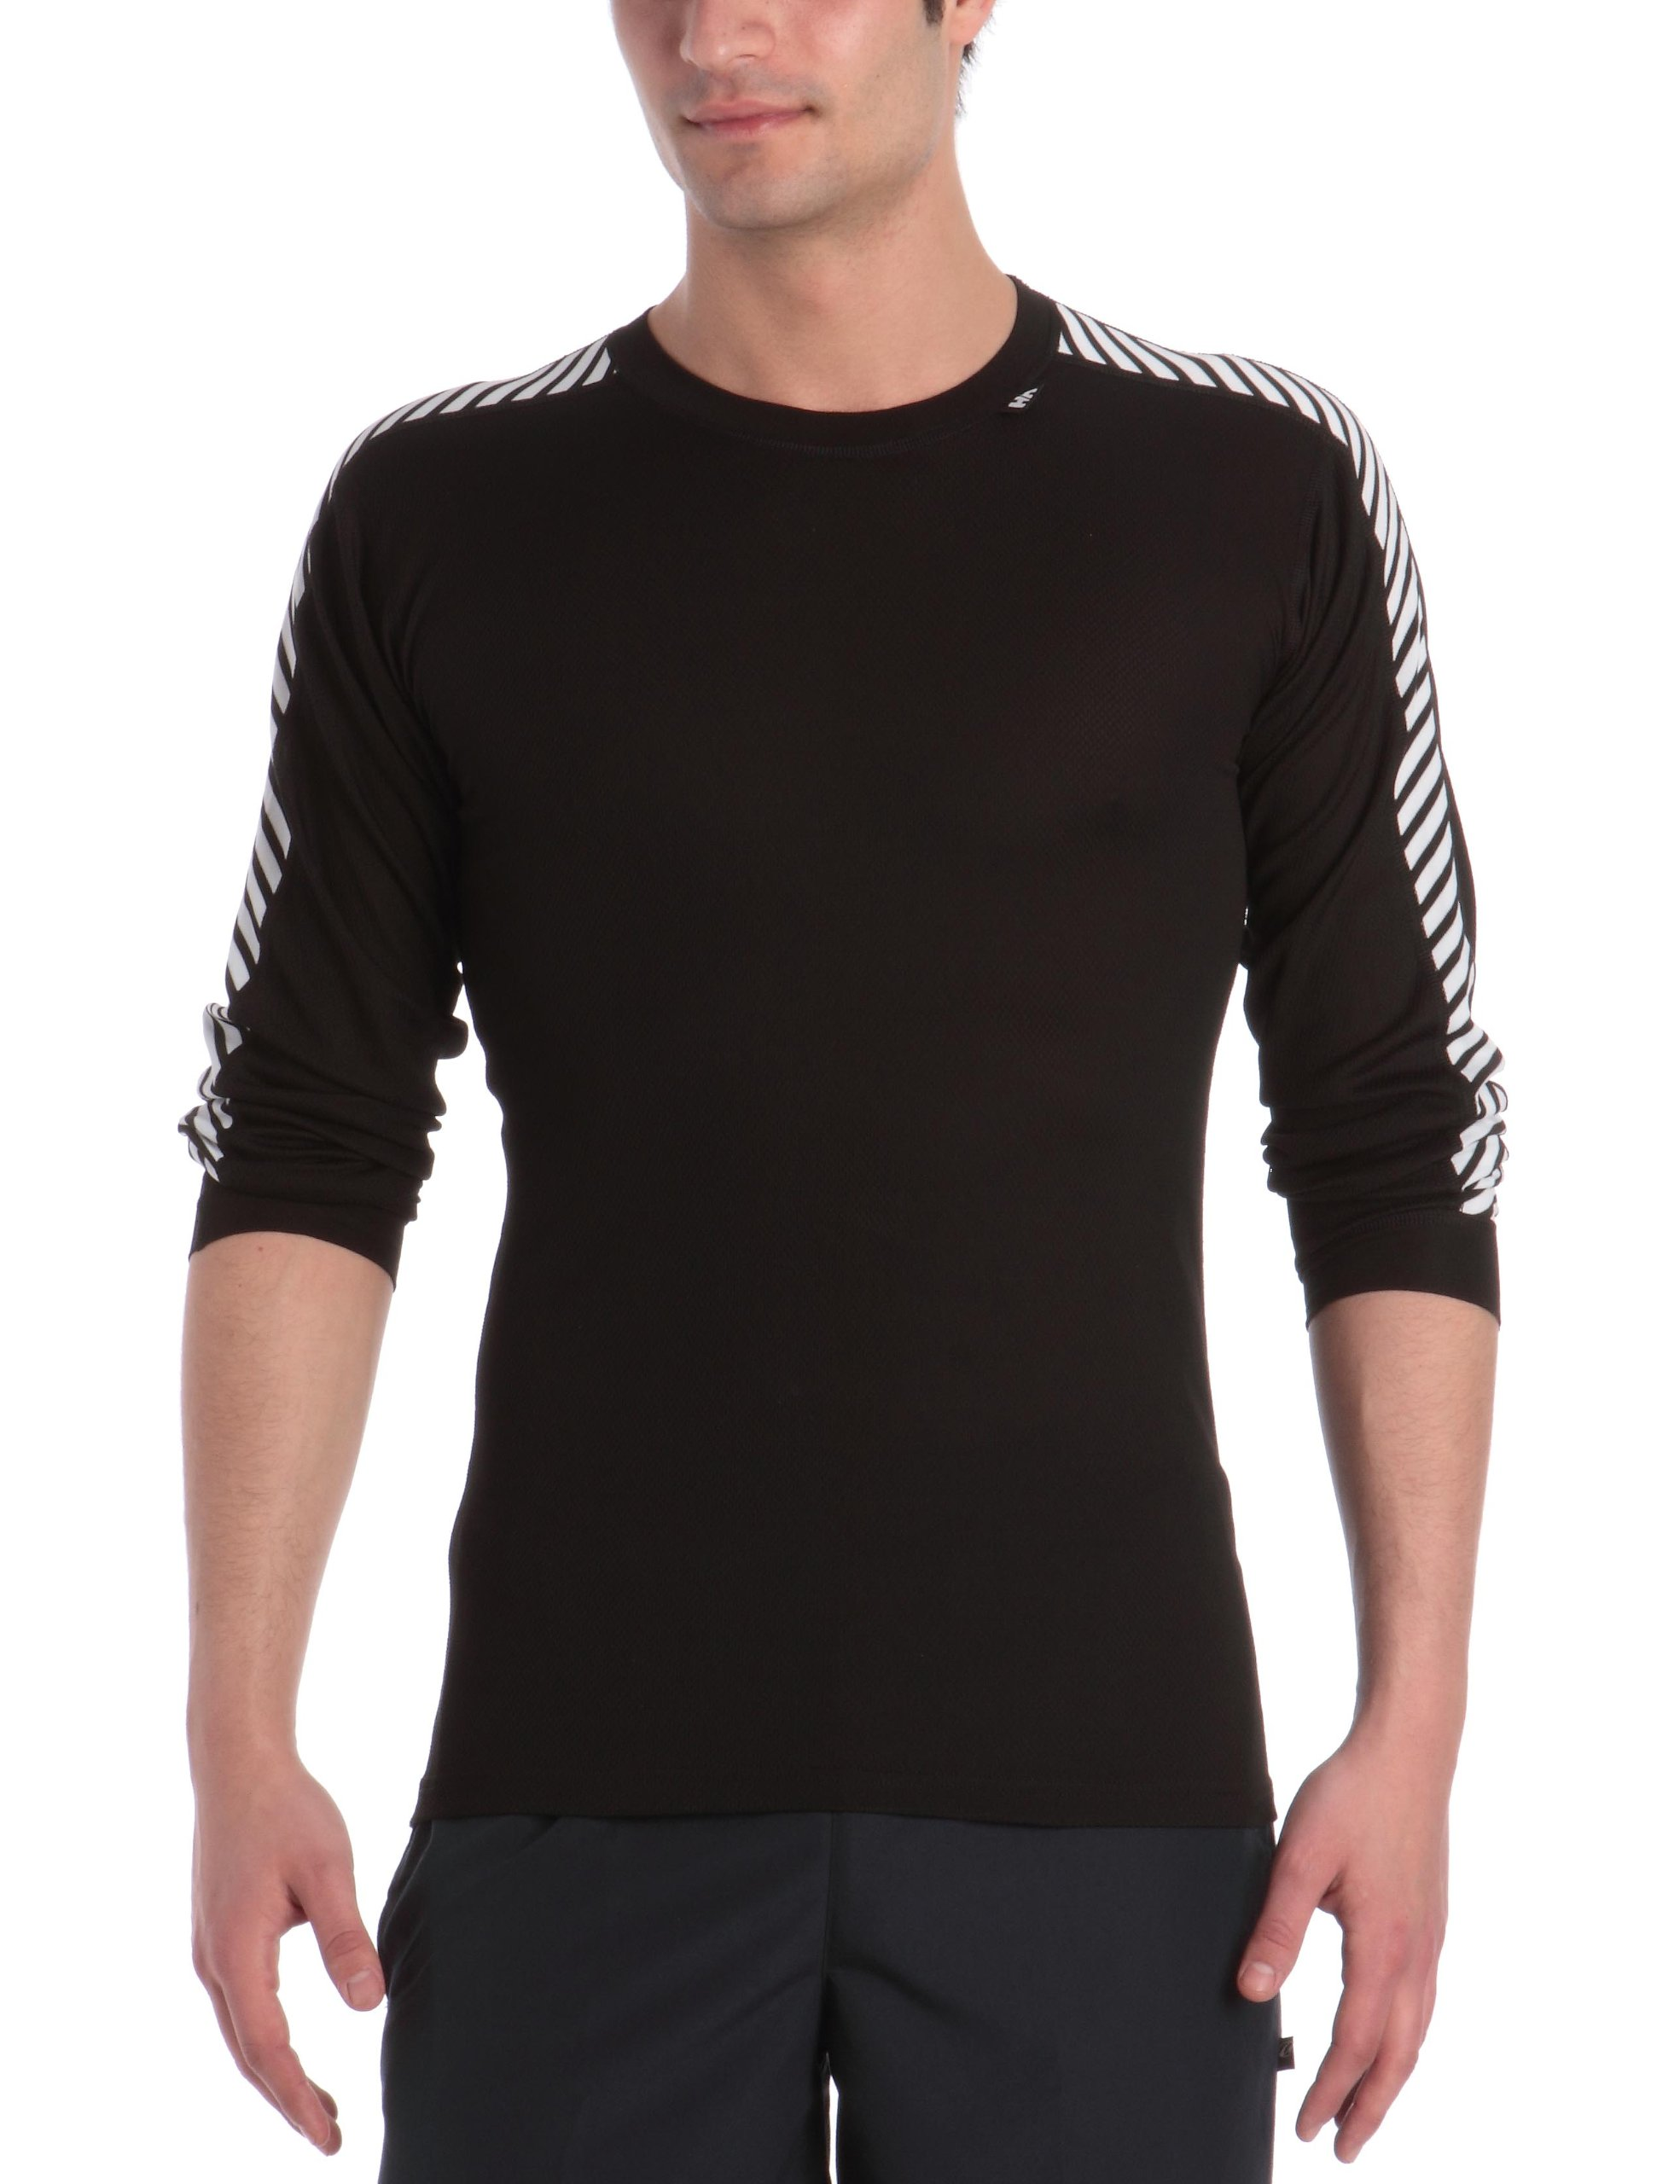 d5dbff546c0 NEW SEASON MEN S RUNNING CLOTHING. TOPS   TEES. Top   Tees. COMPRESSION  BASE LAYERS. Compression Base Layers